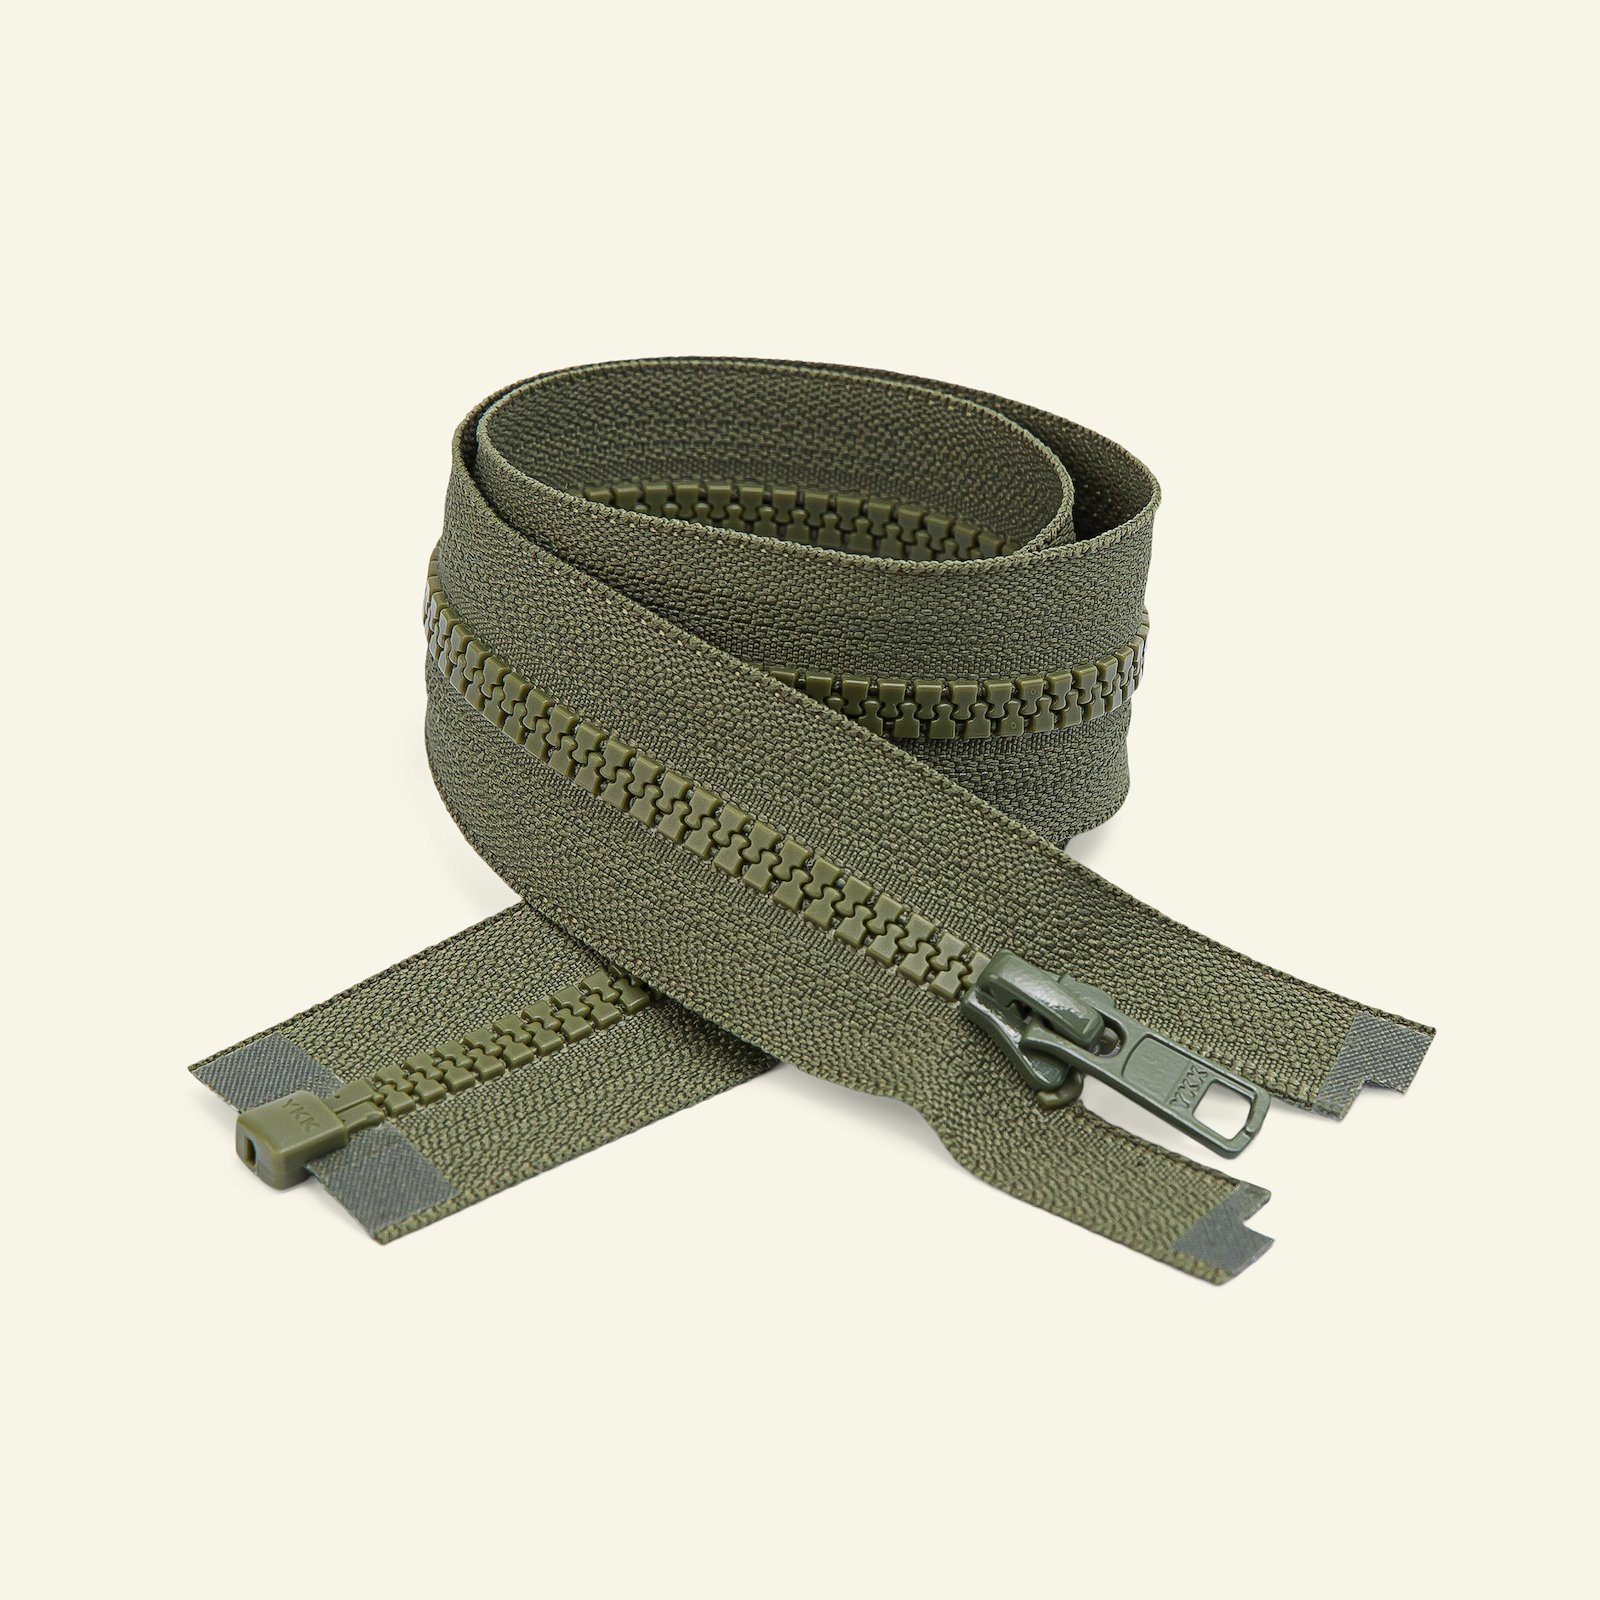 YKK zip 6mm open end 40cm army x50033_pack